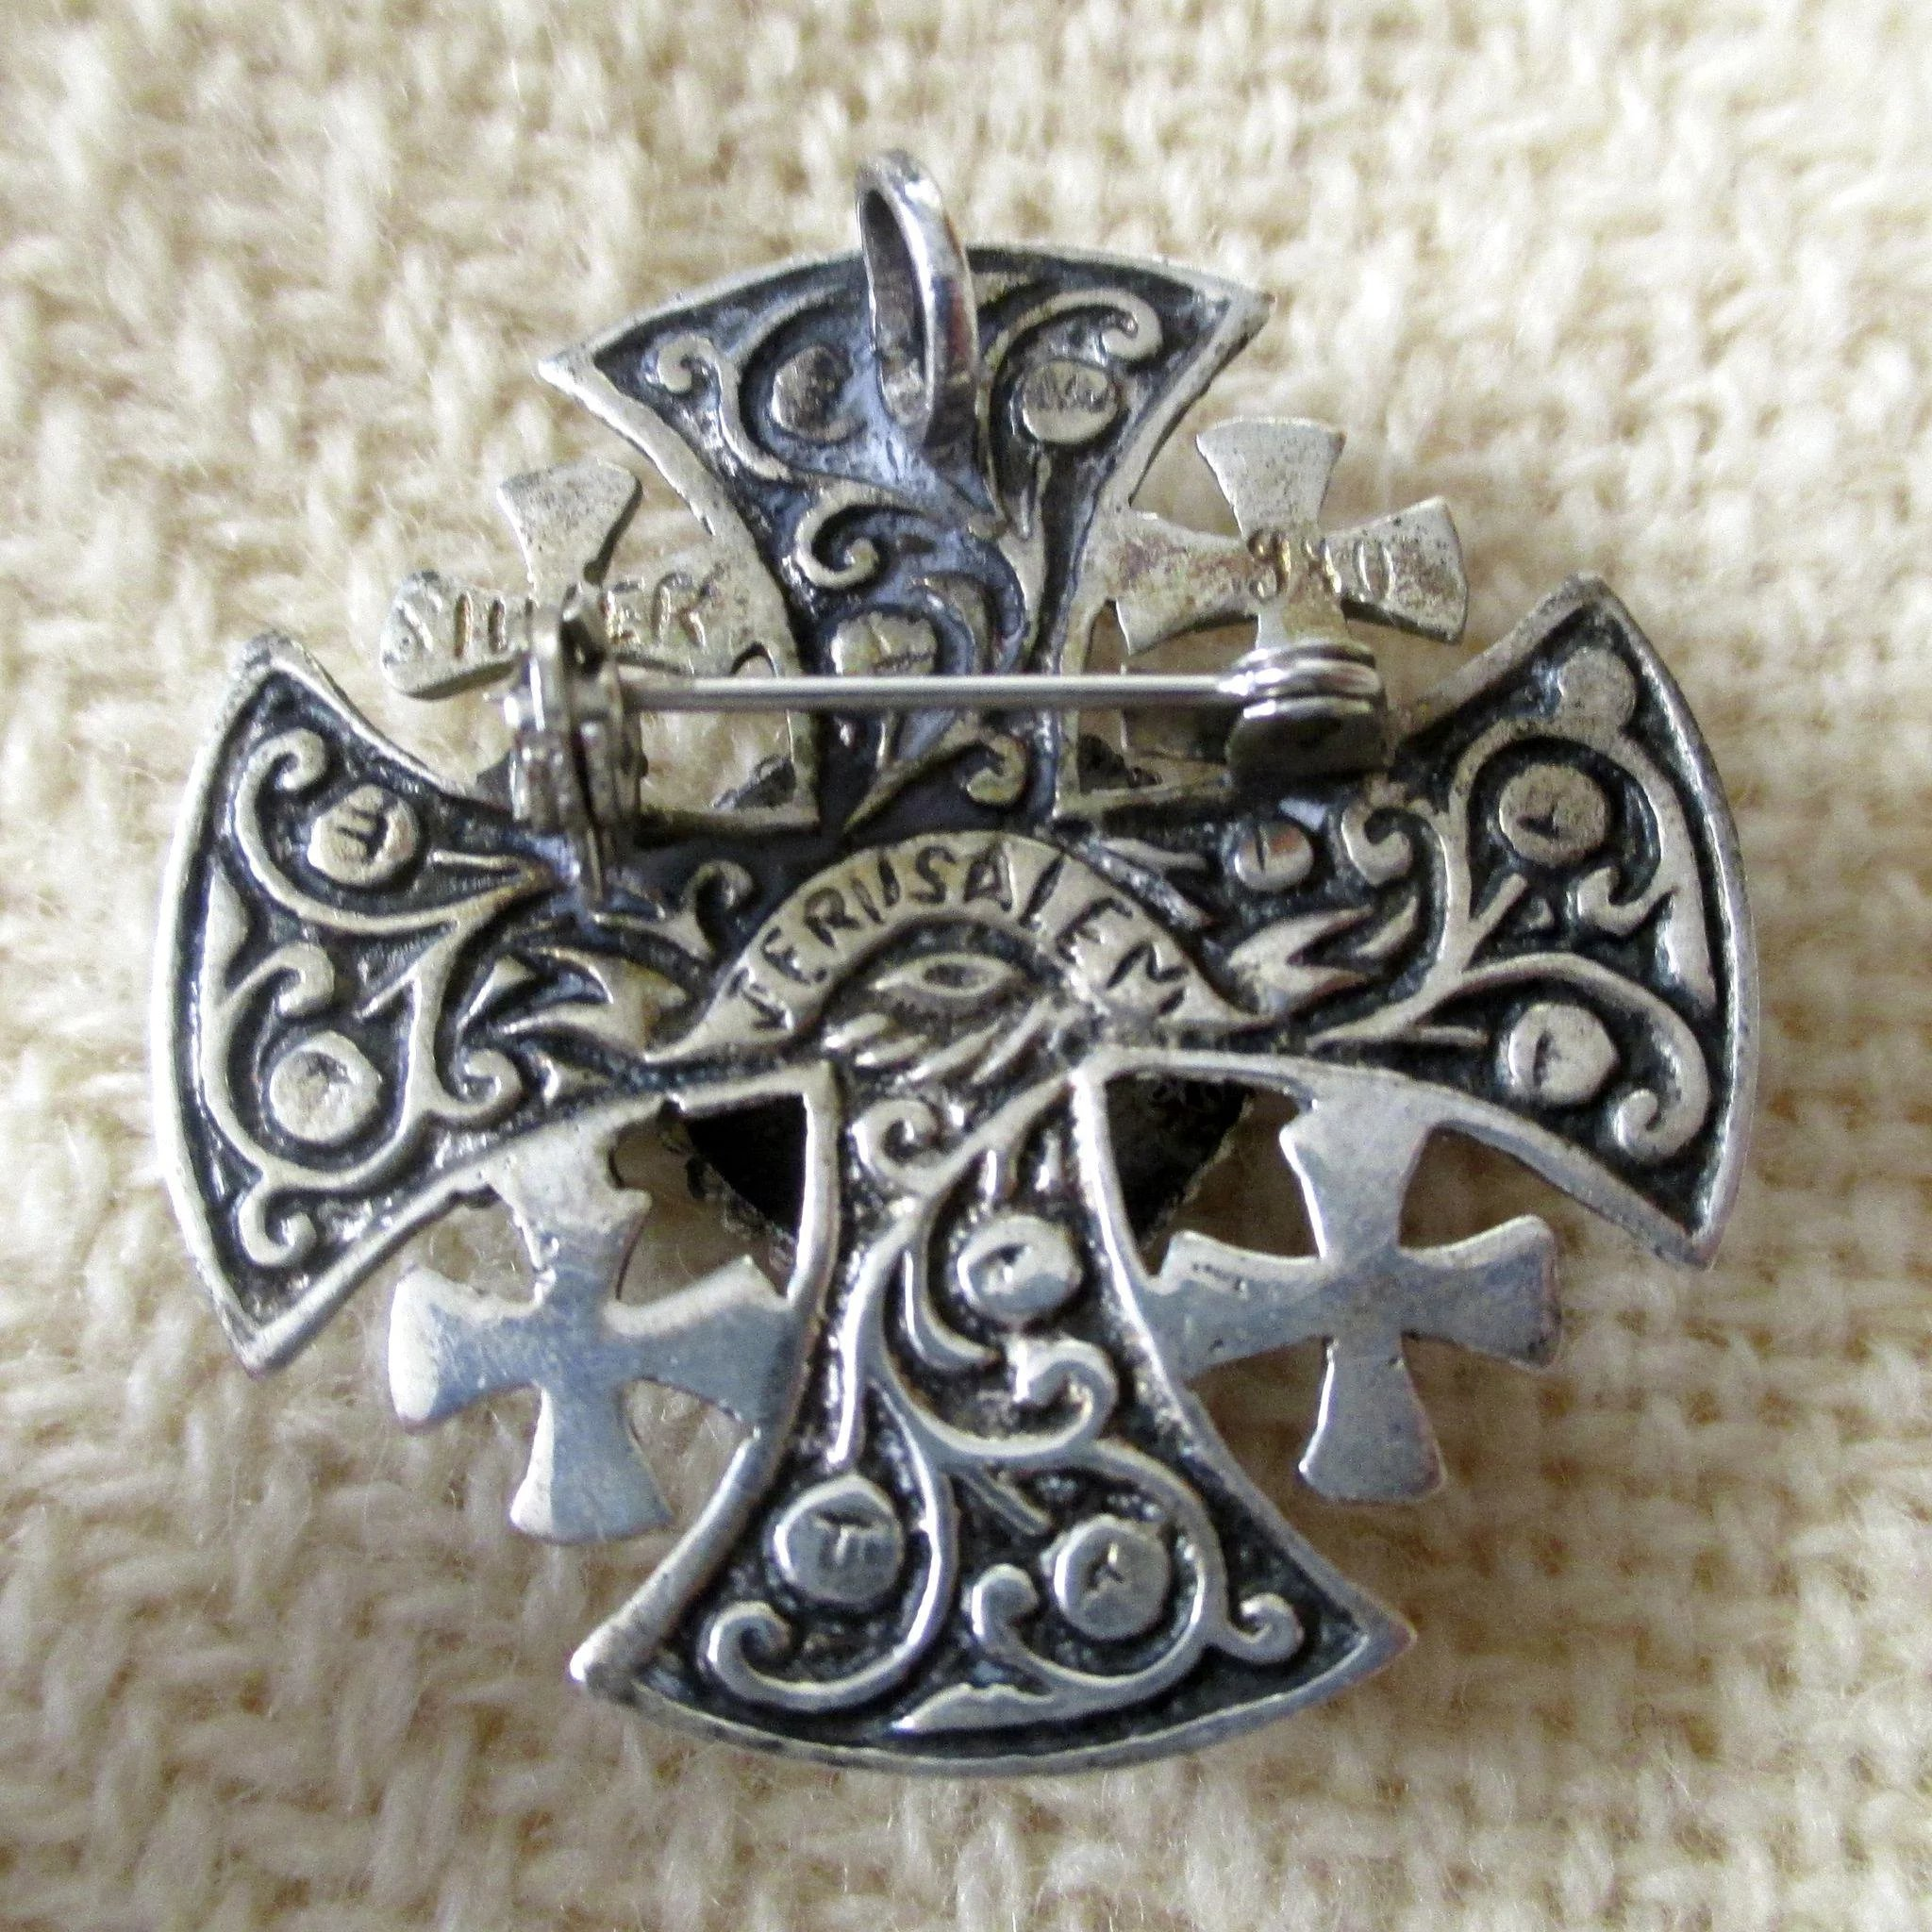 f silver crusaders item cross to expand necklace click full vintage jerusalem pendant